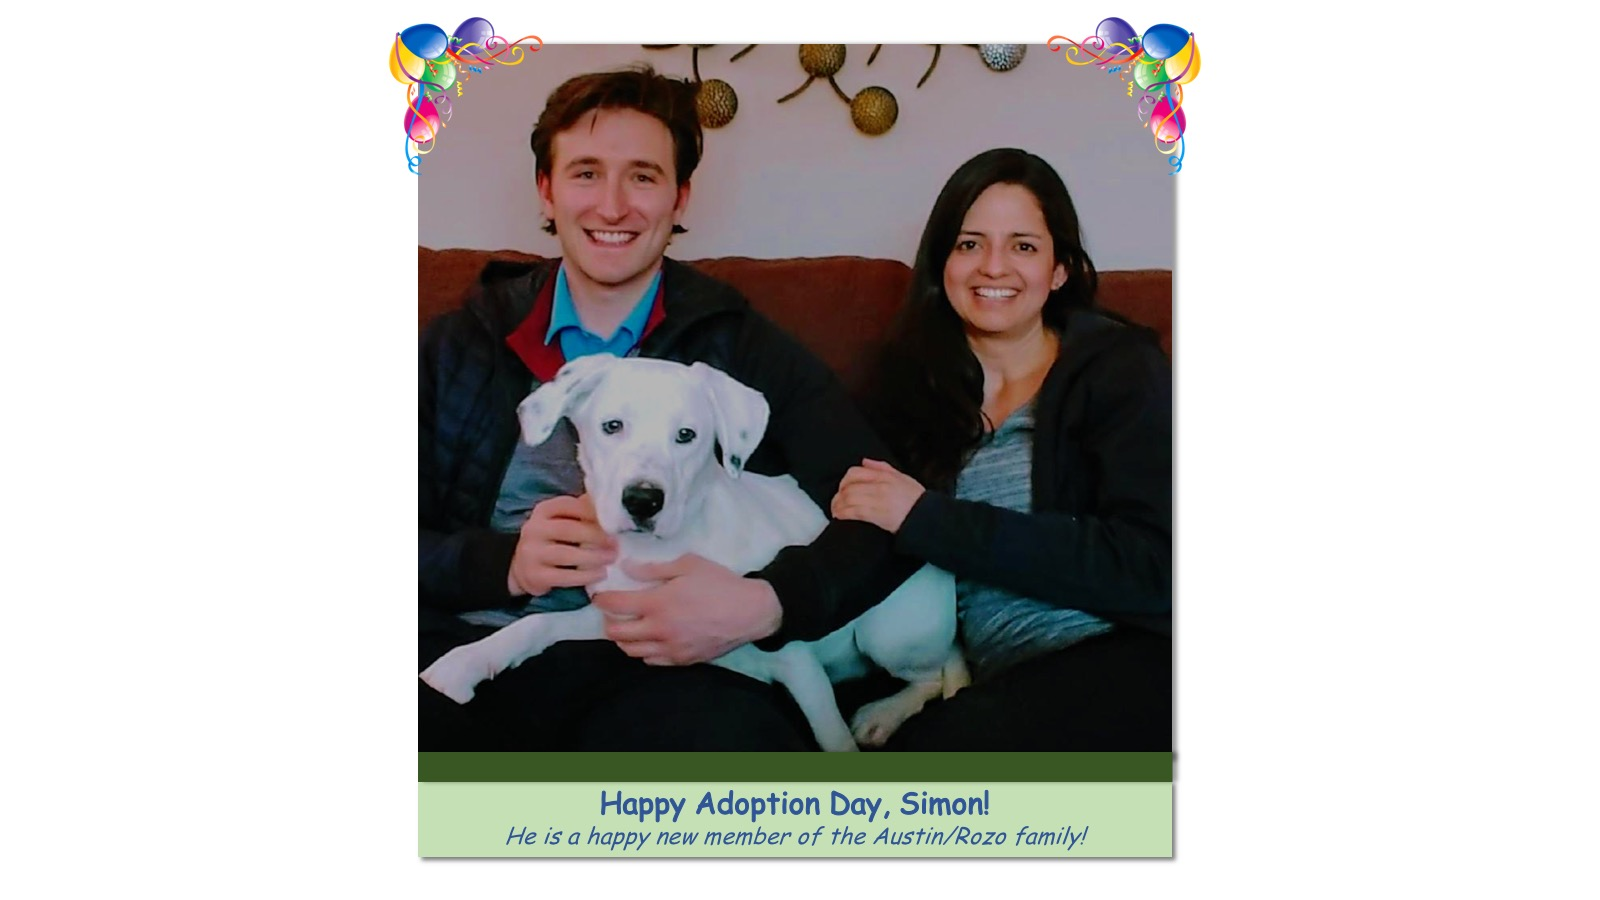 Simon_Adoption_Photo32693.jpg